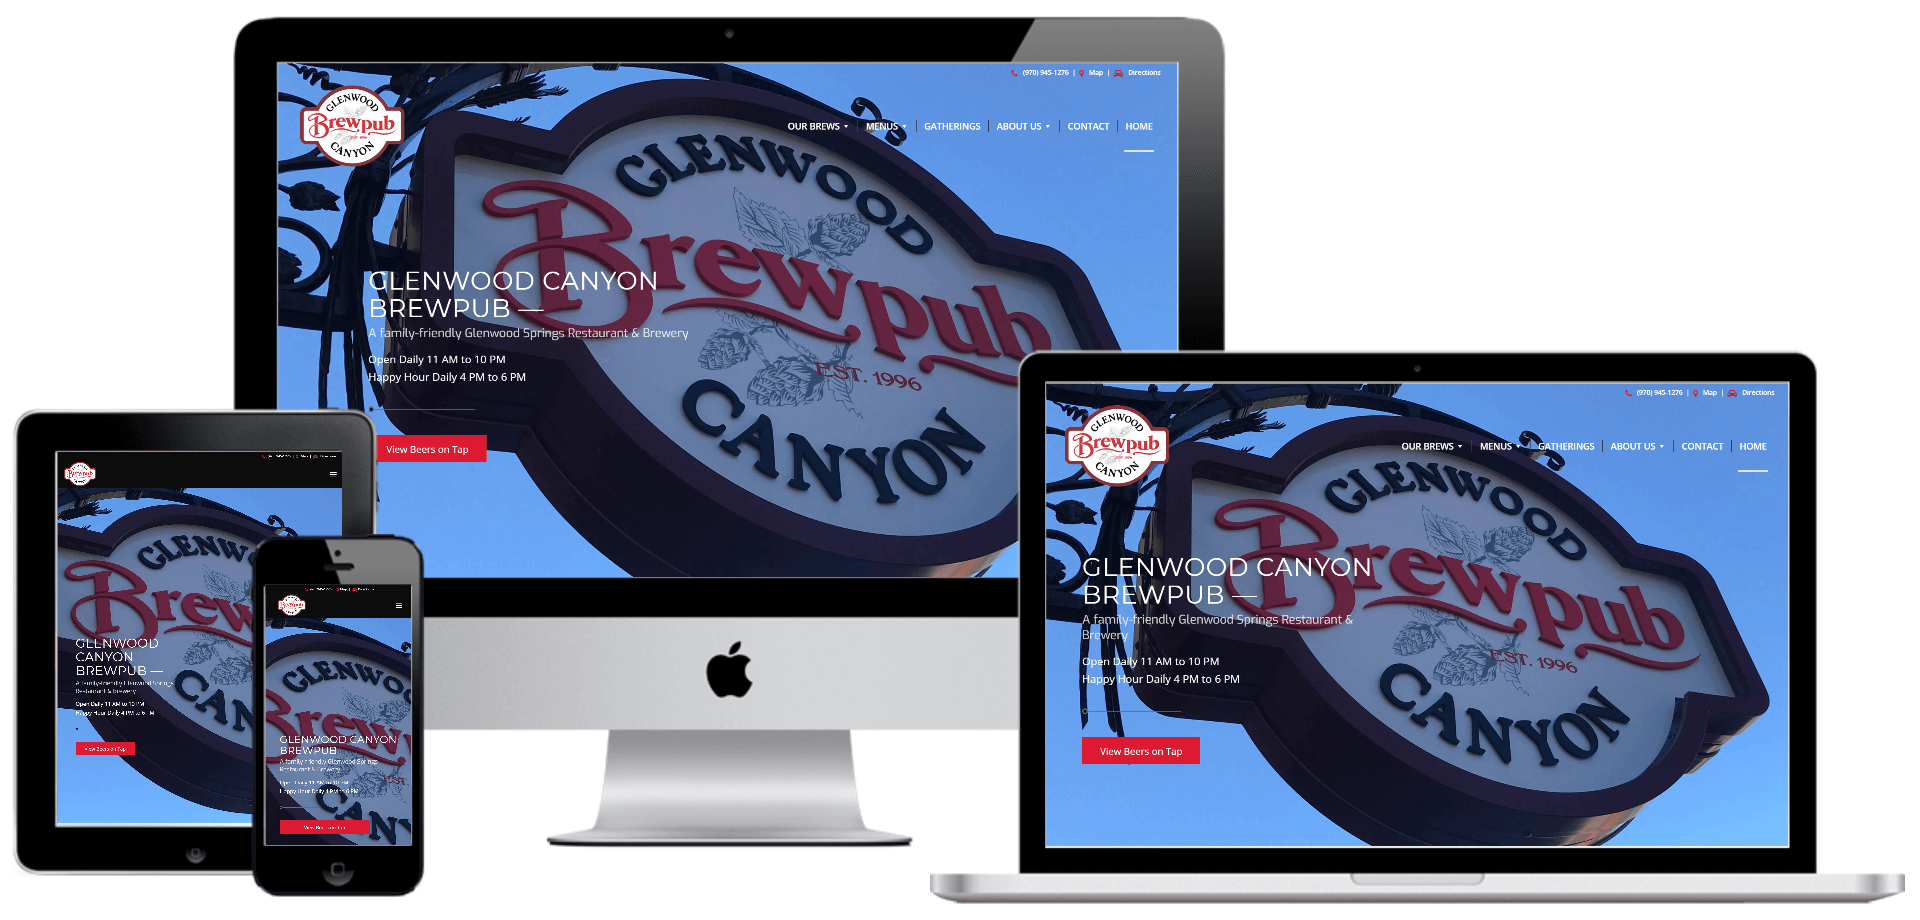 Glenwood Canyon Brewpub mockups